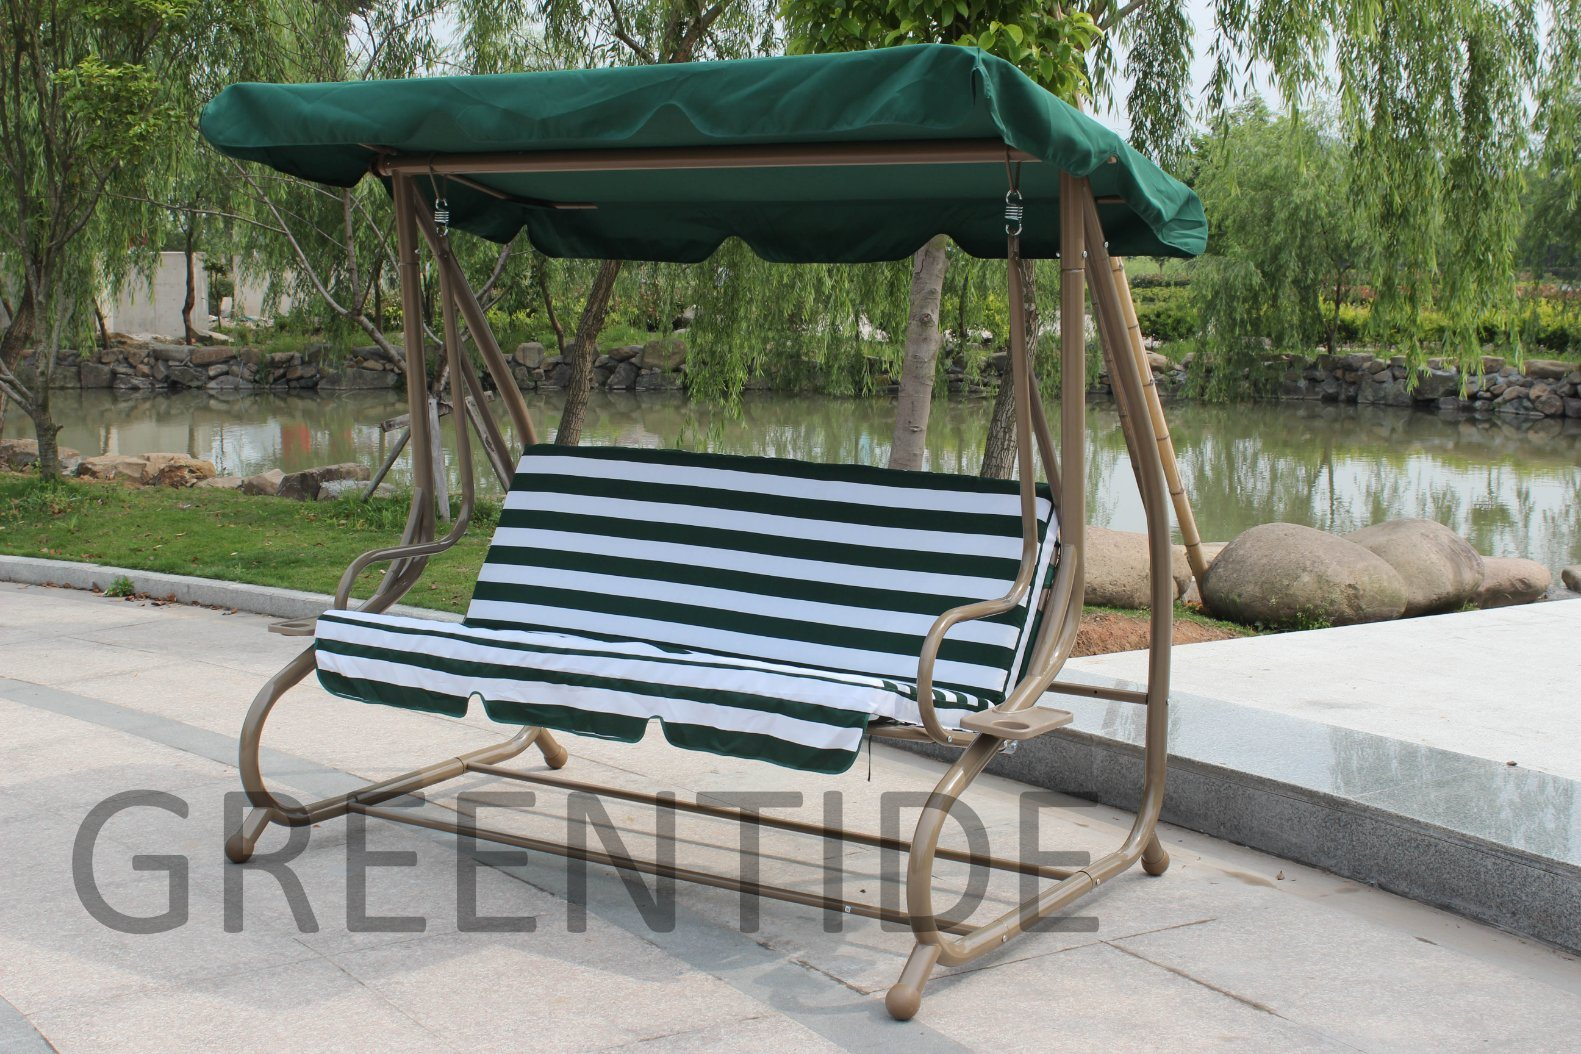 Outdoor Steel Garden Furniture Patio Swing Chair with Side Table